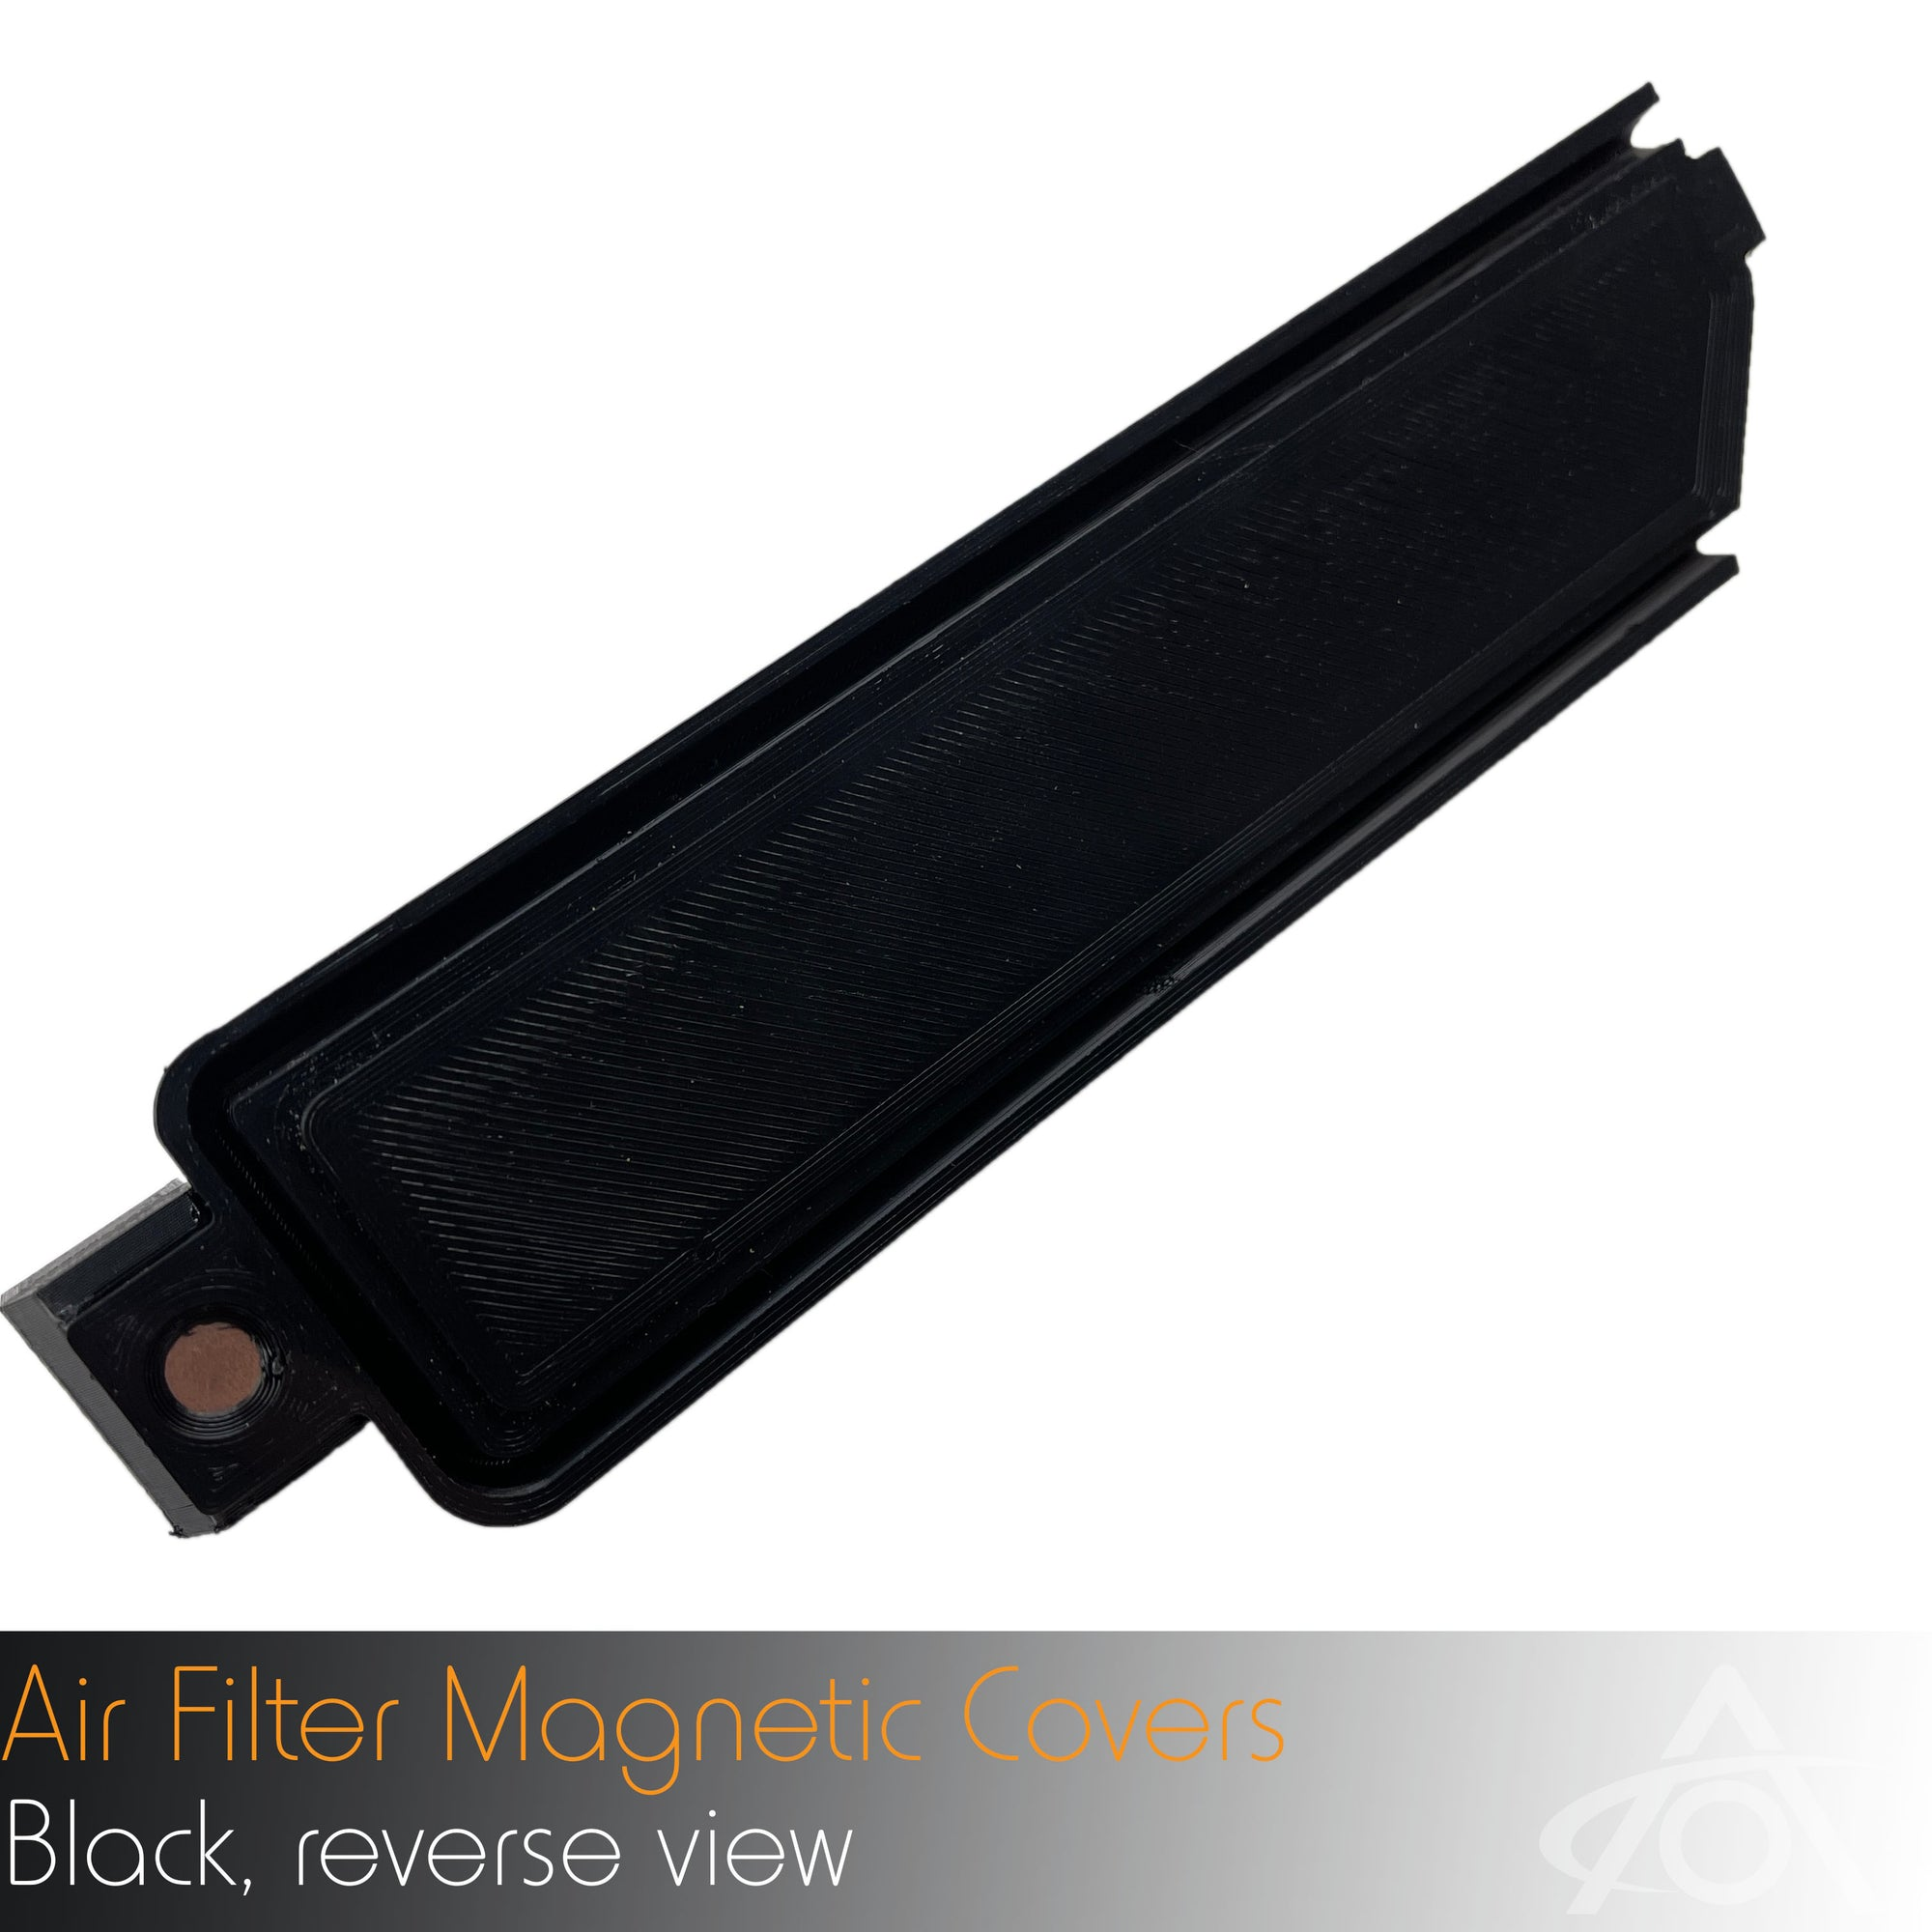 Air Filter Magnetic Cover